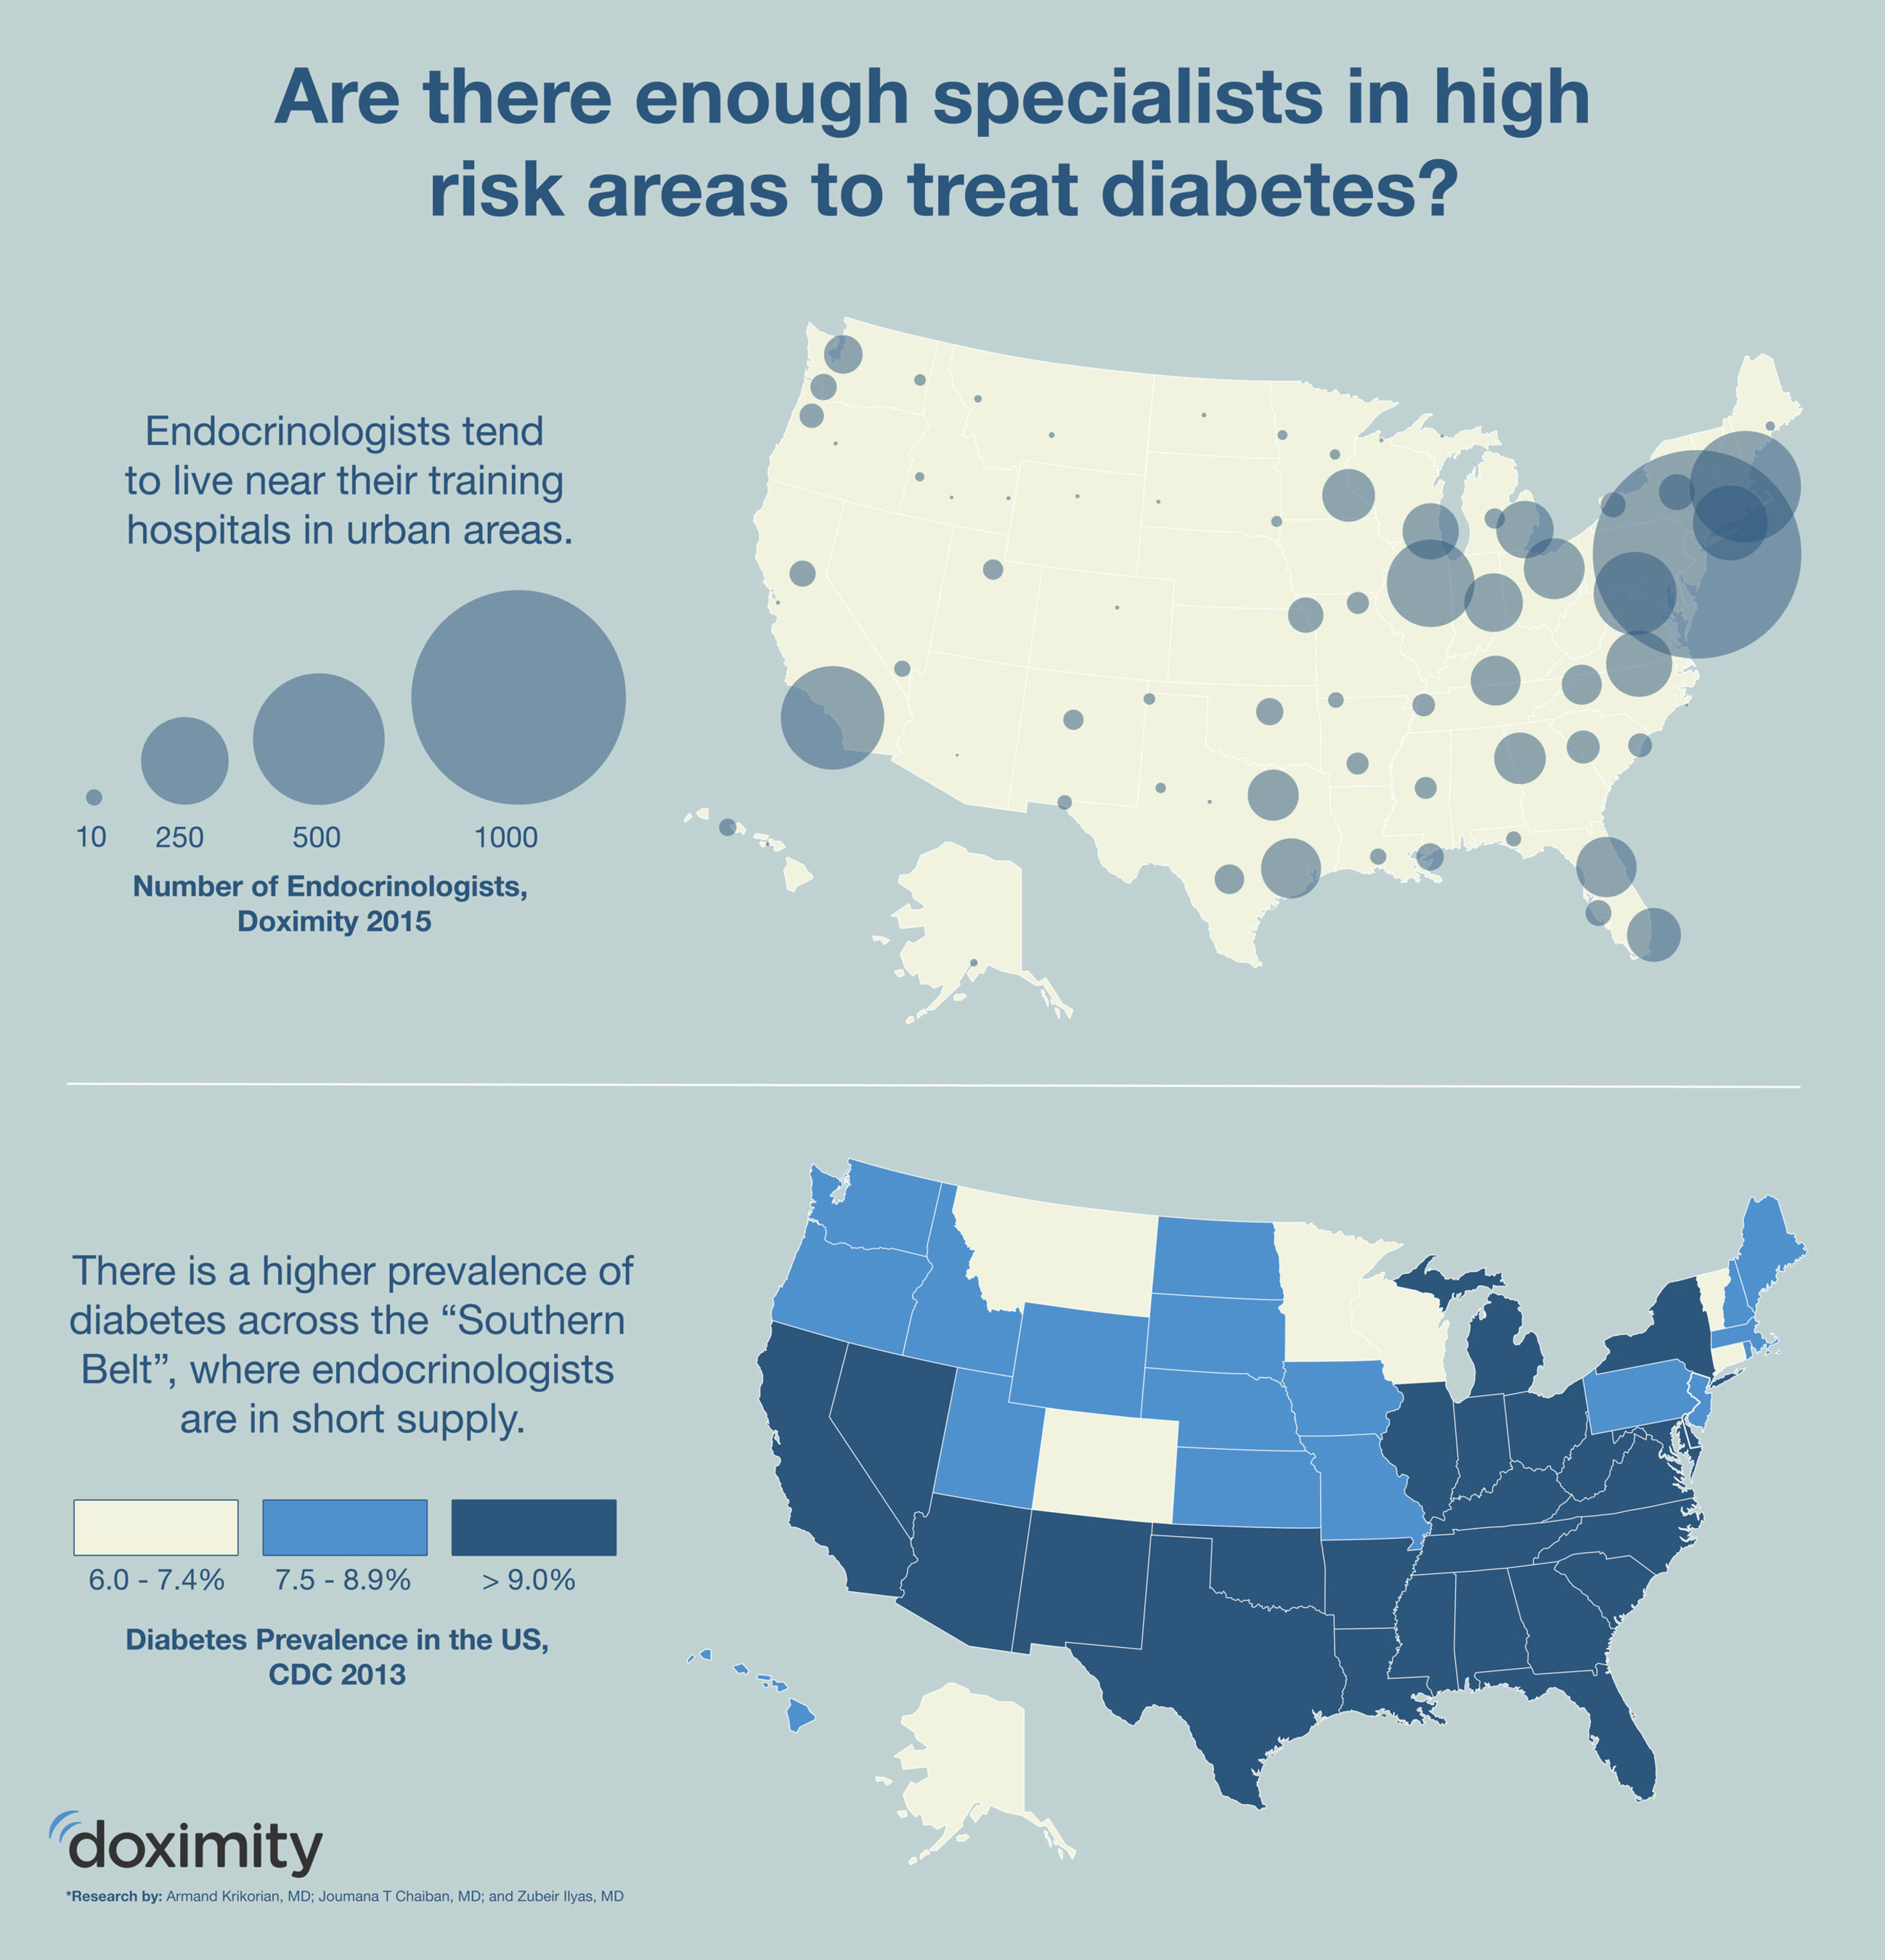 Are there enough specialists in high risk areas to treat diabetes? Source: Doximity